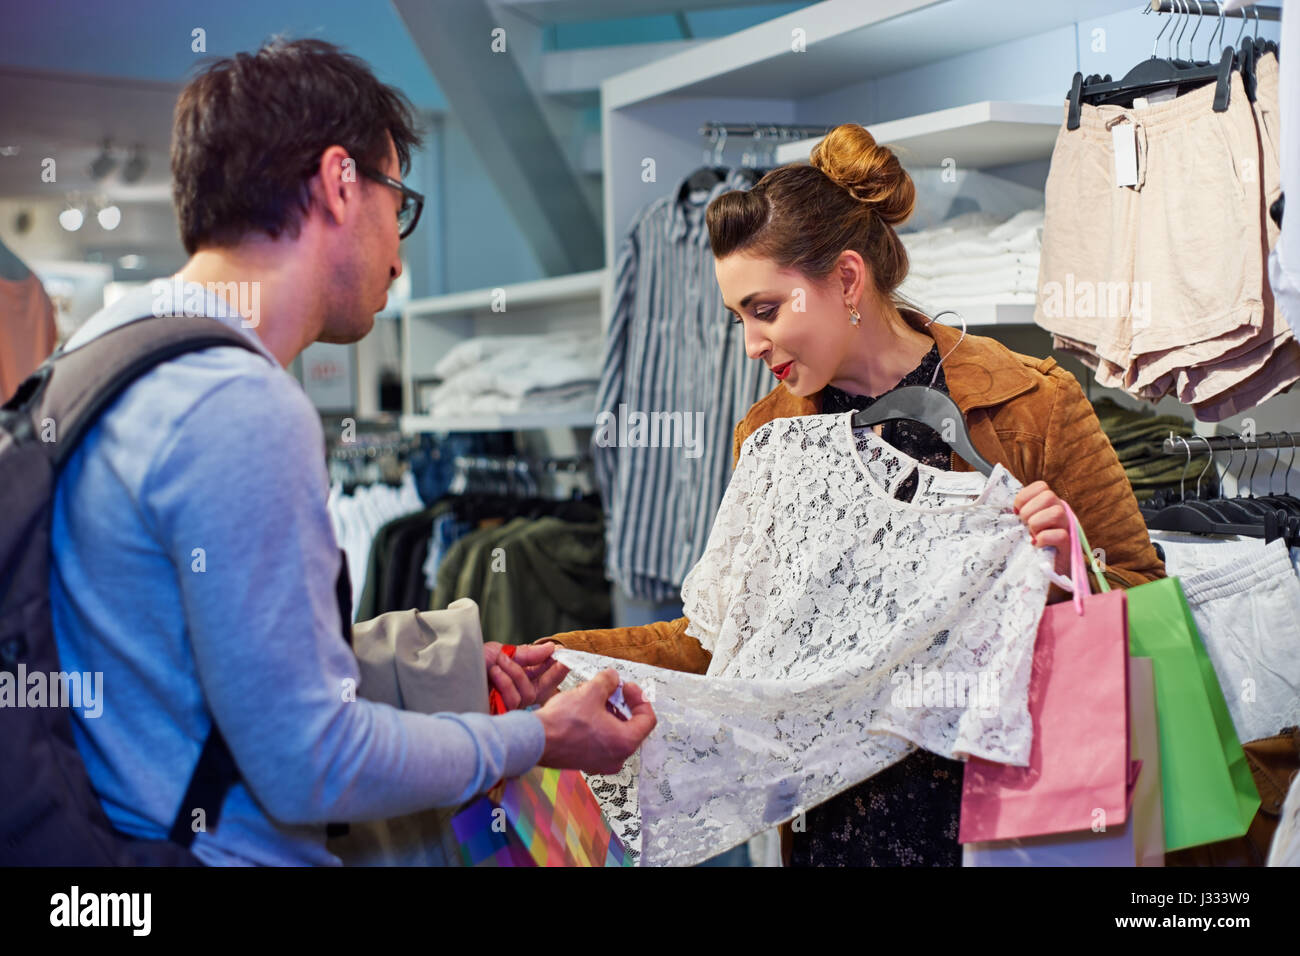 Woman and man in clothing store - Stock Image